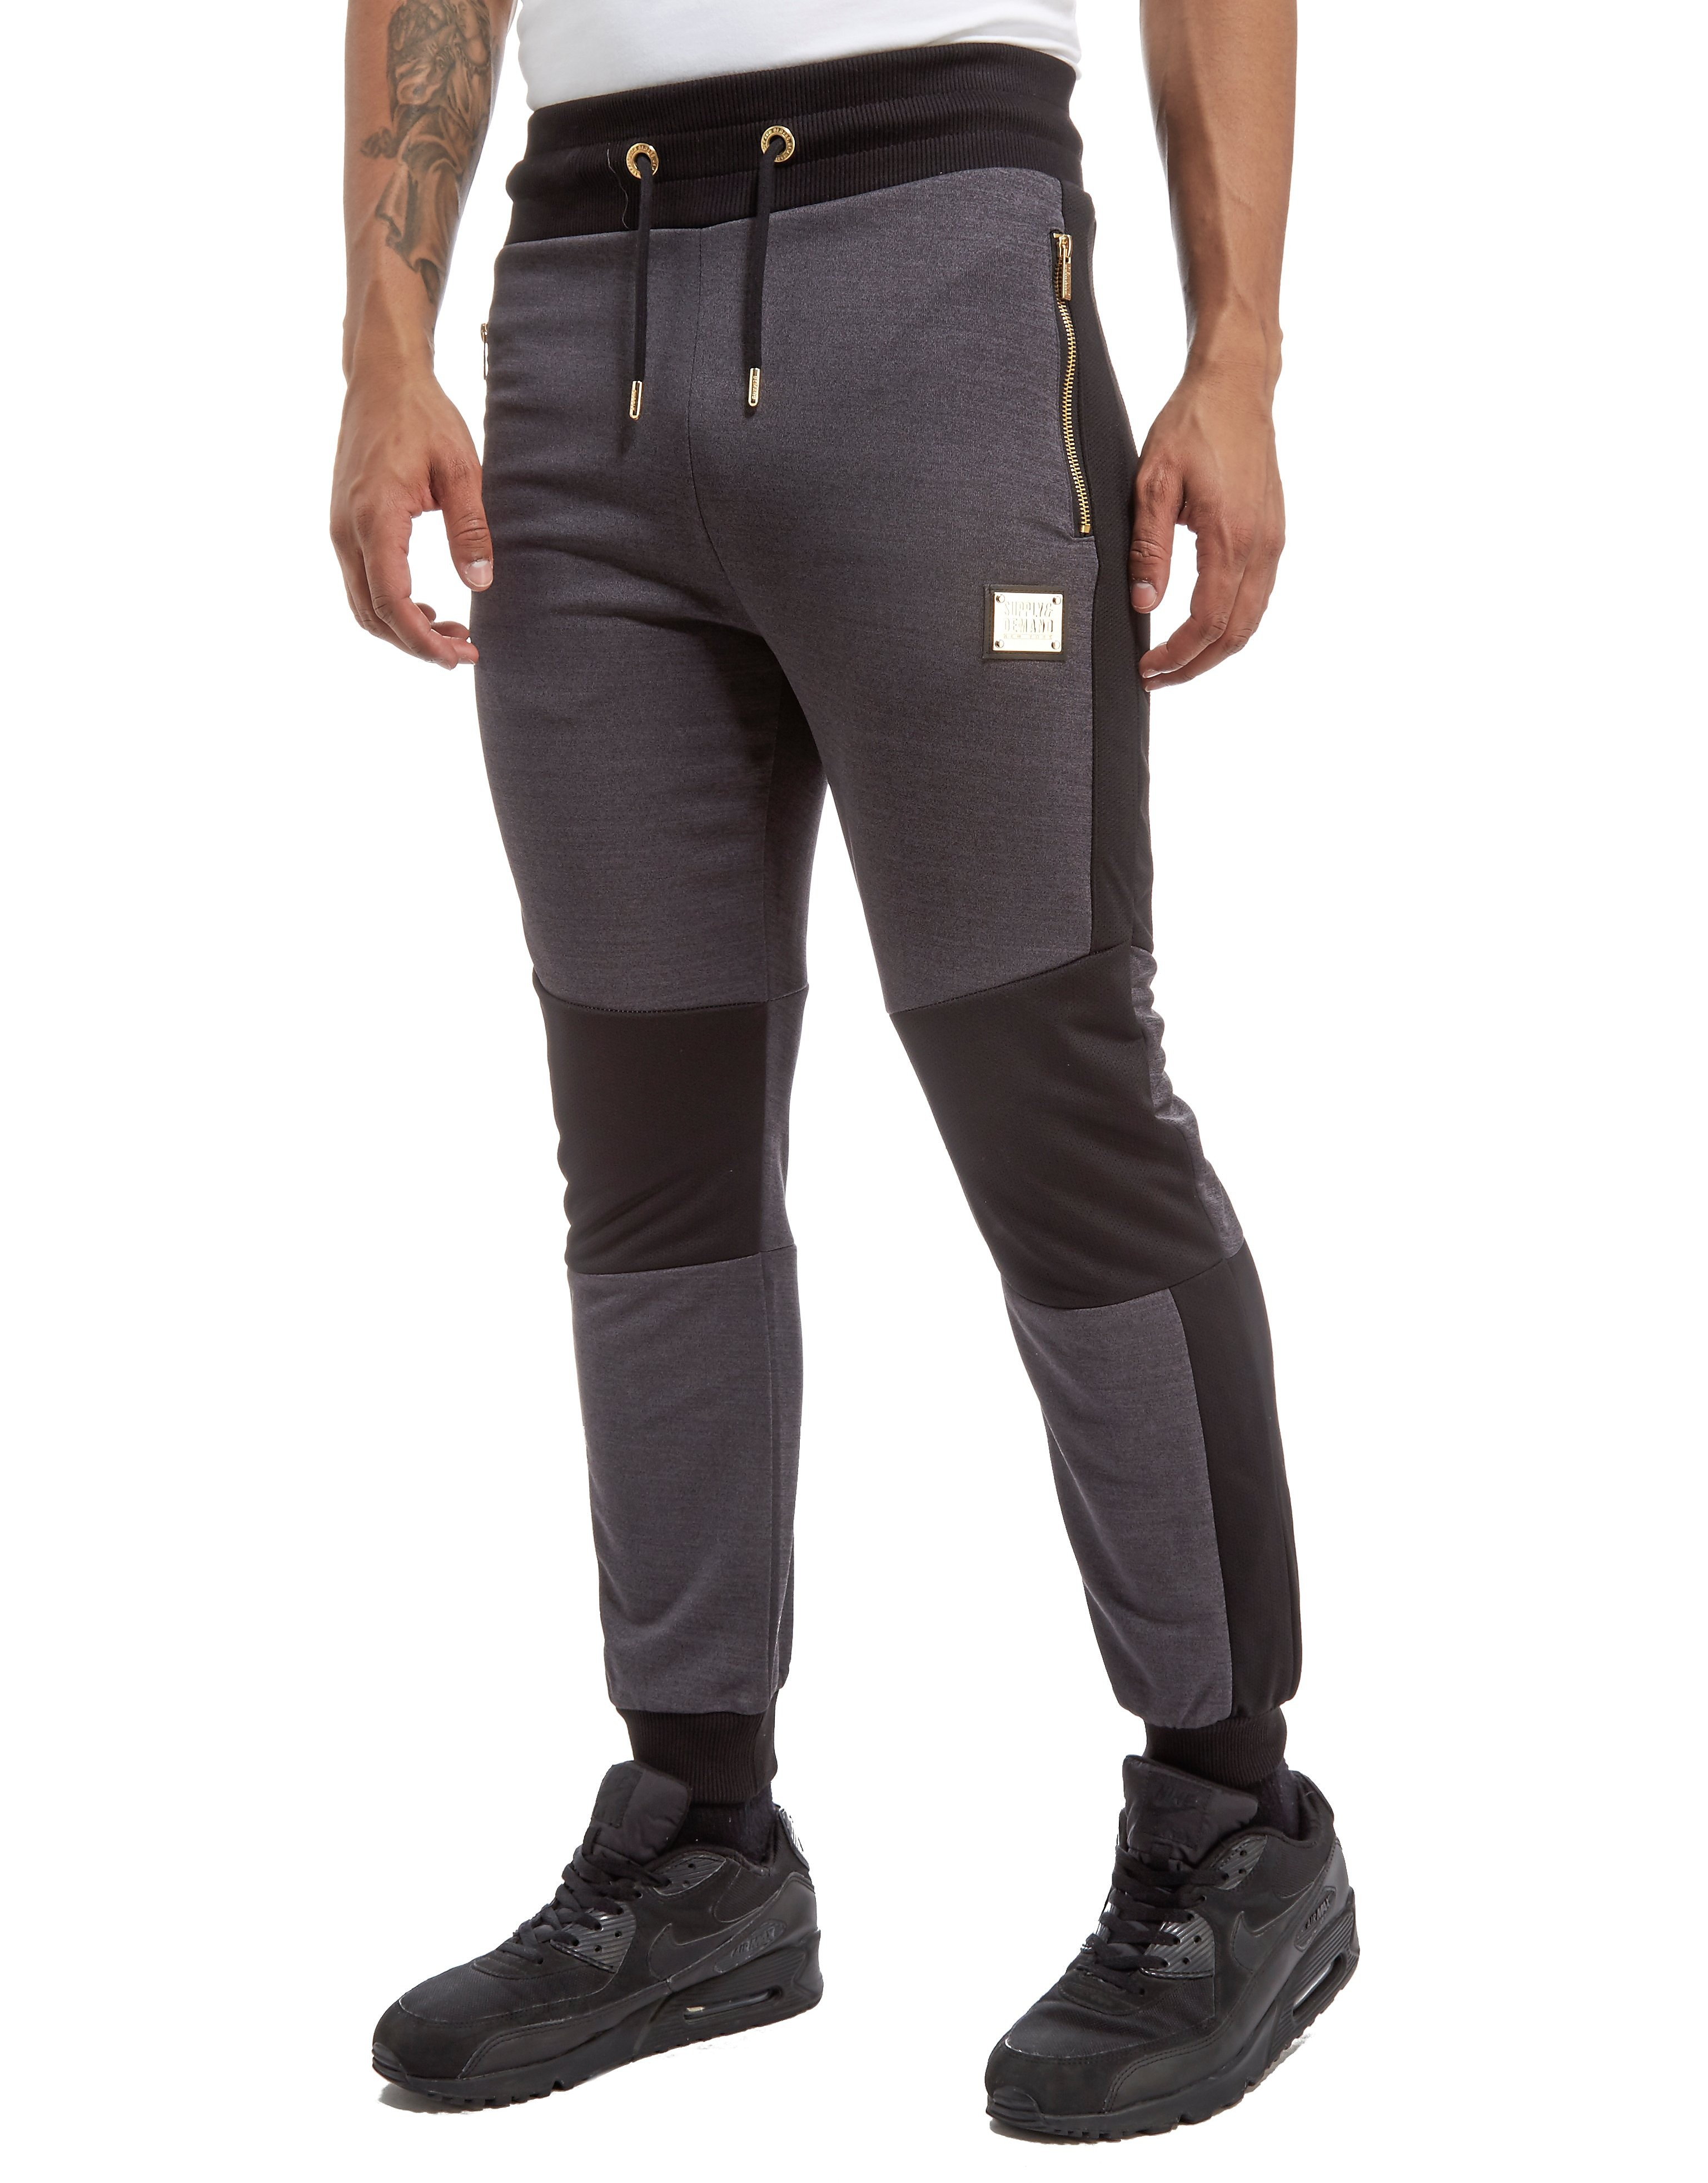 Supply & Demand Joggers Magnetic Homme - Only at JD - Grey, Grey